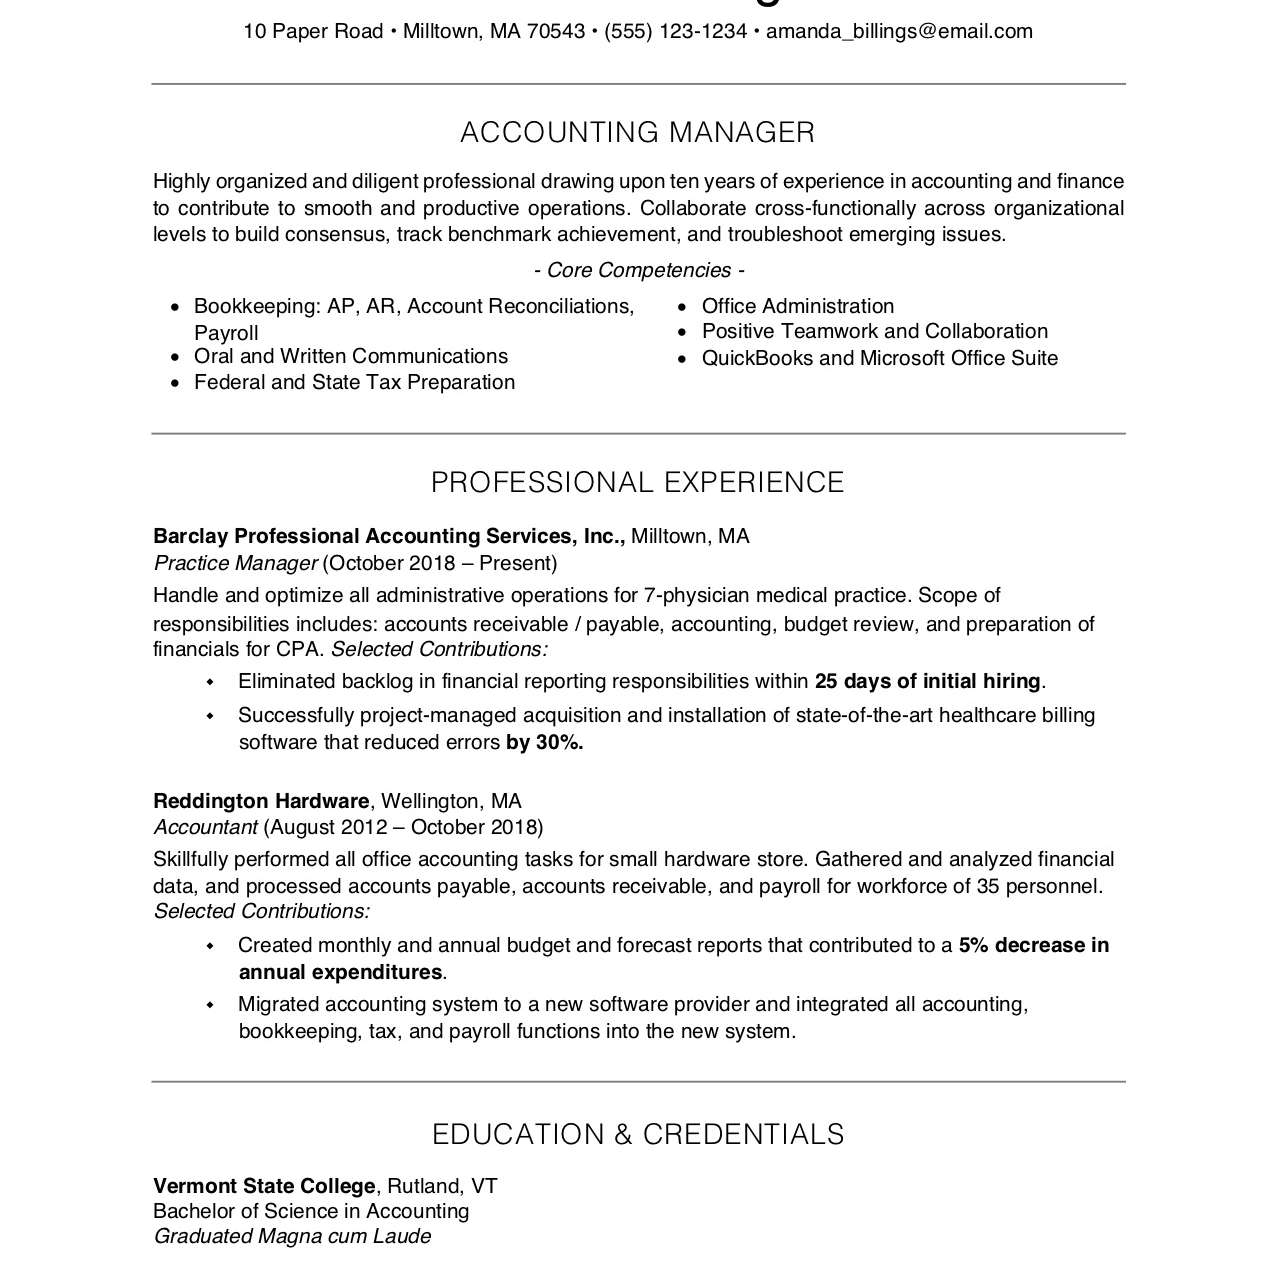 free professional resume examples and writing tips experience sample 2063596res1 linkedin Resume Professional Experience Resume Sample